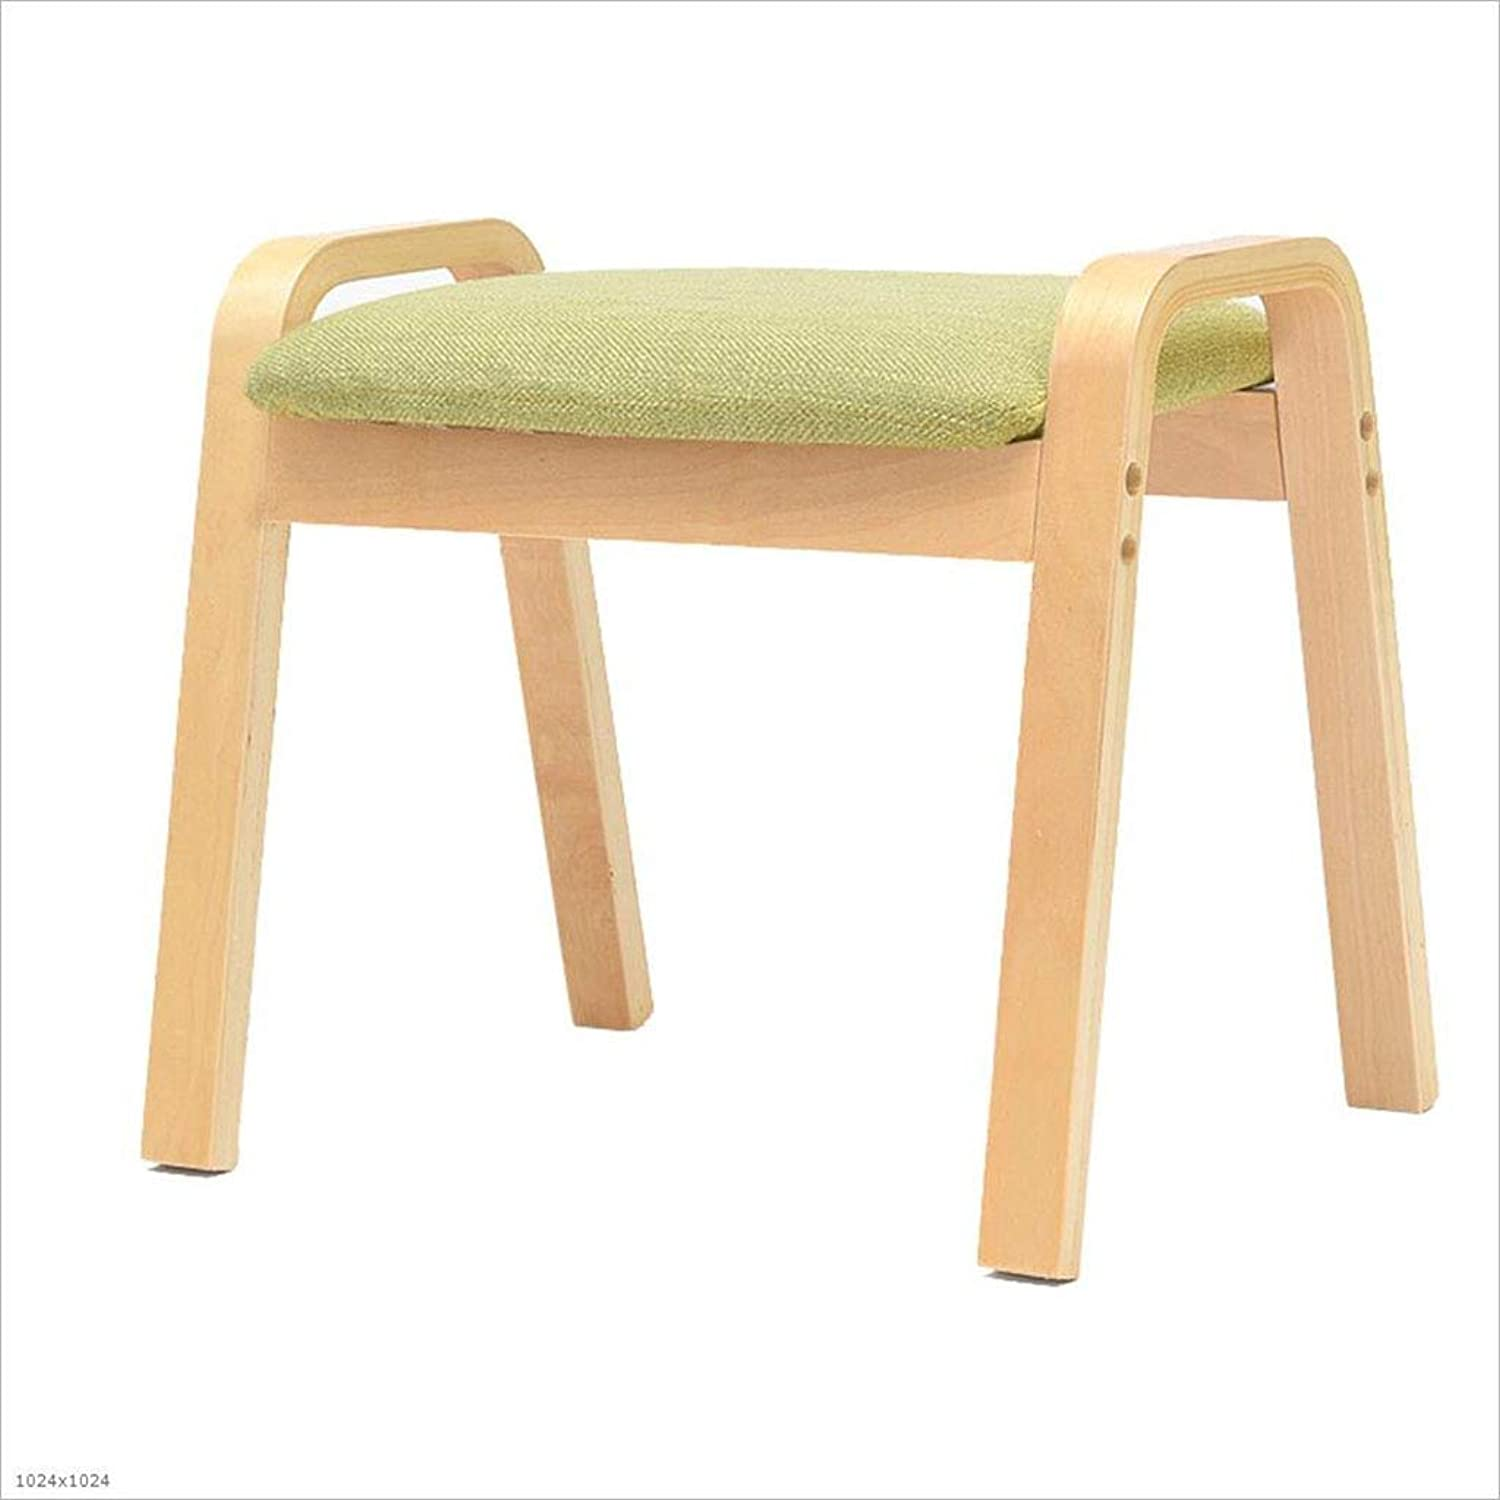 Home Stool Replacement shoes Stool Fashion Living Room Stool Sofa Foot Stool Solid Wood Stool,C